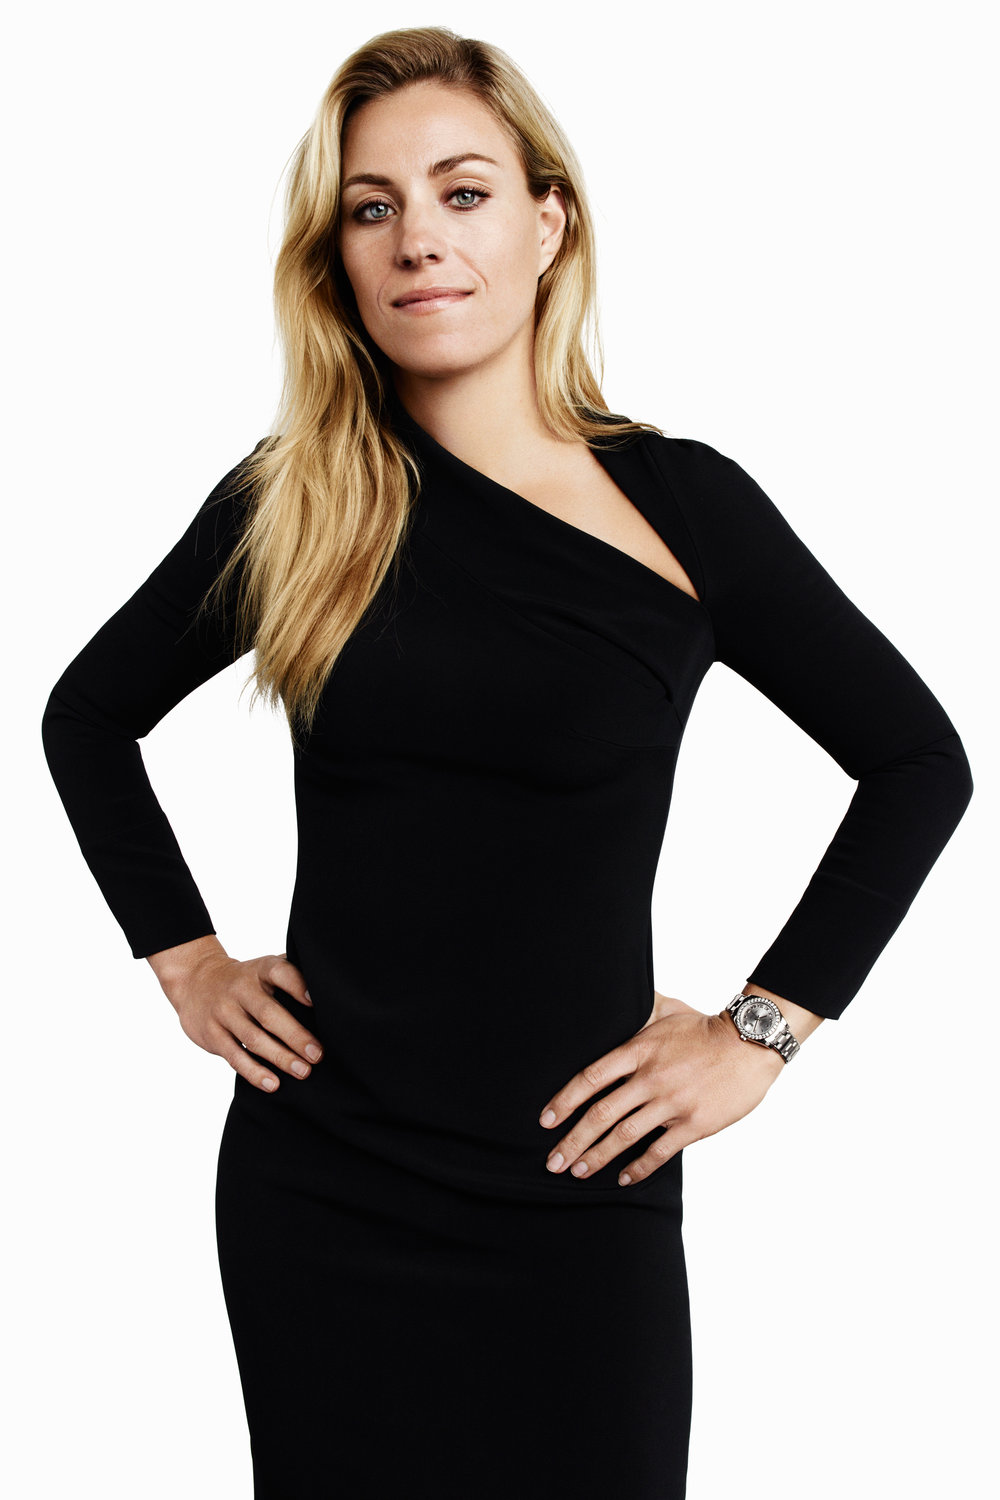 ANGELIQUE KERBER for ROLEX x ELLE